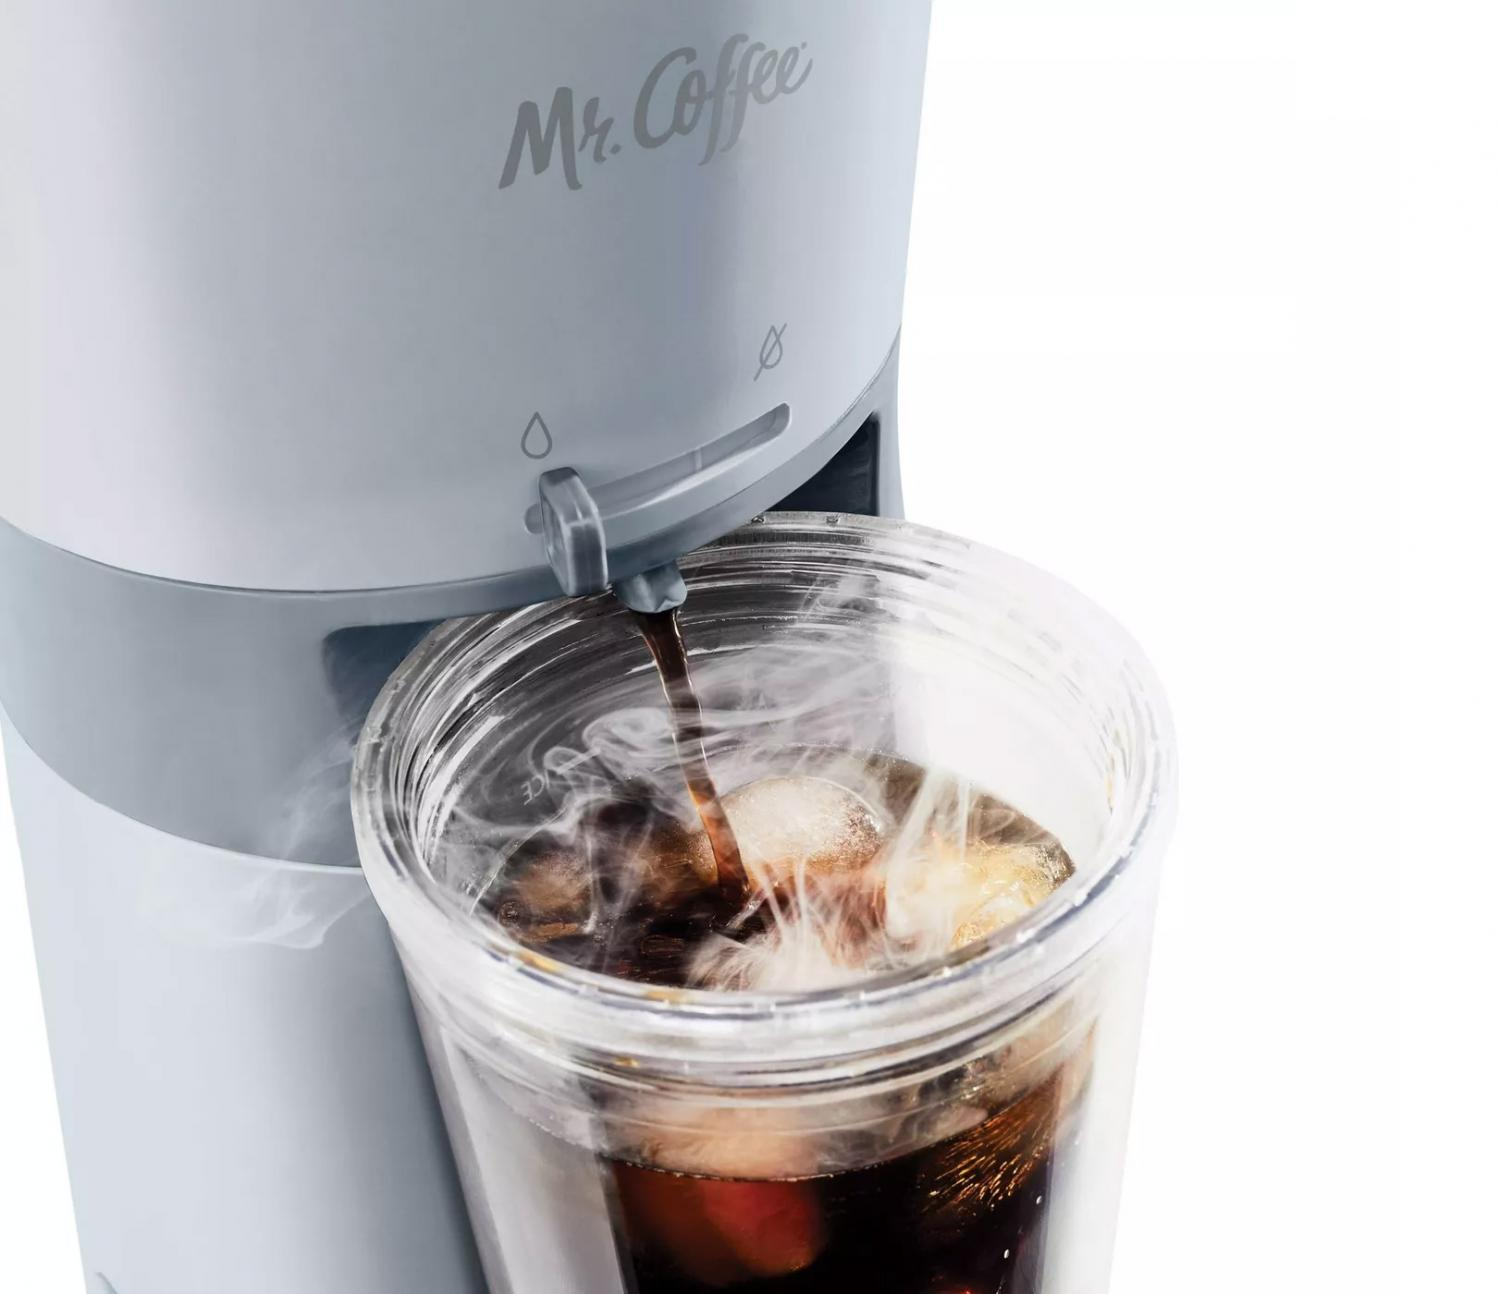 Mr. Coffee Iced Coffee Maker - At home iced coffee maker